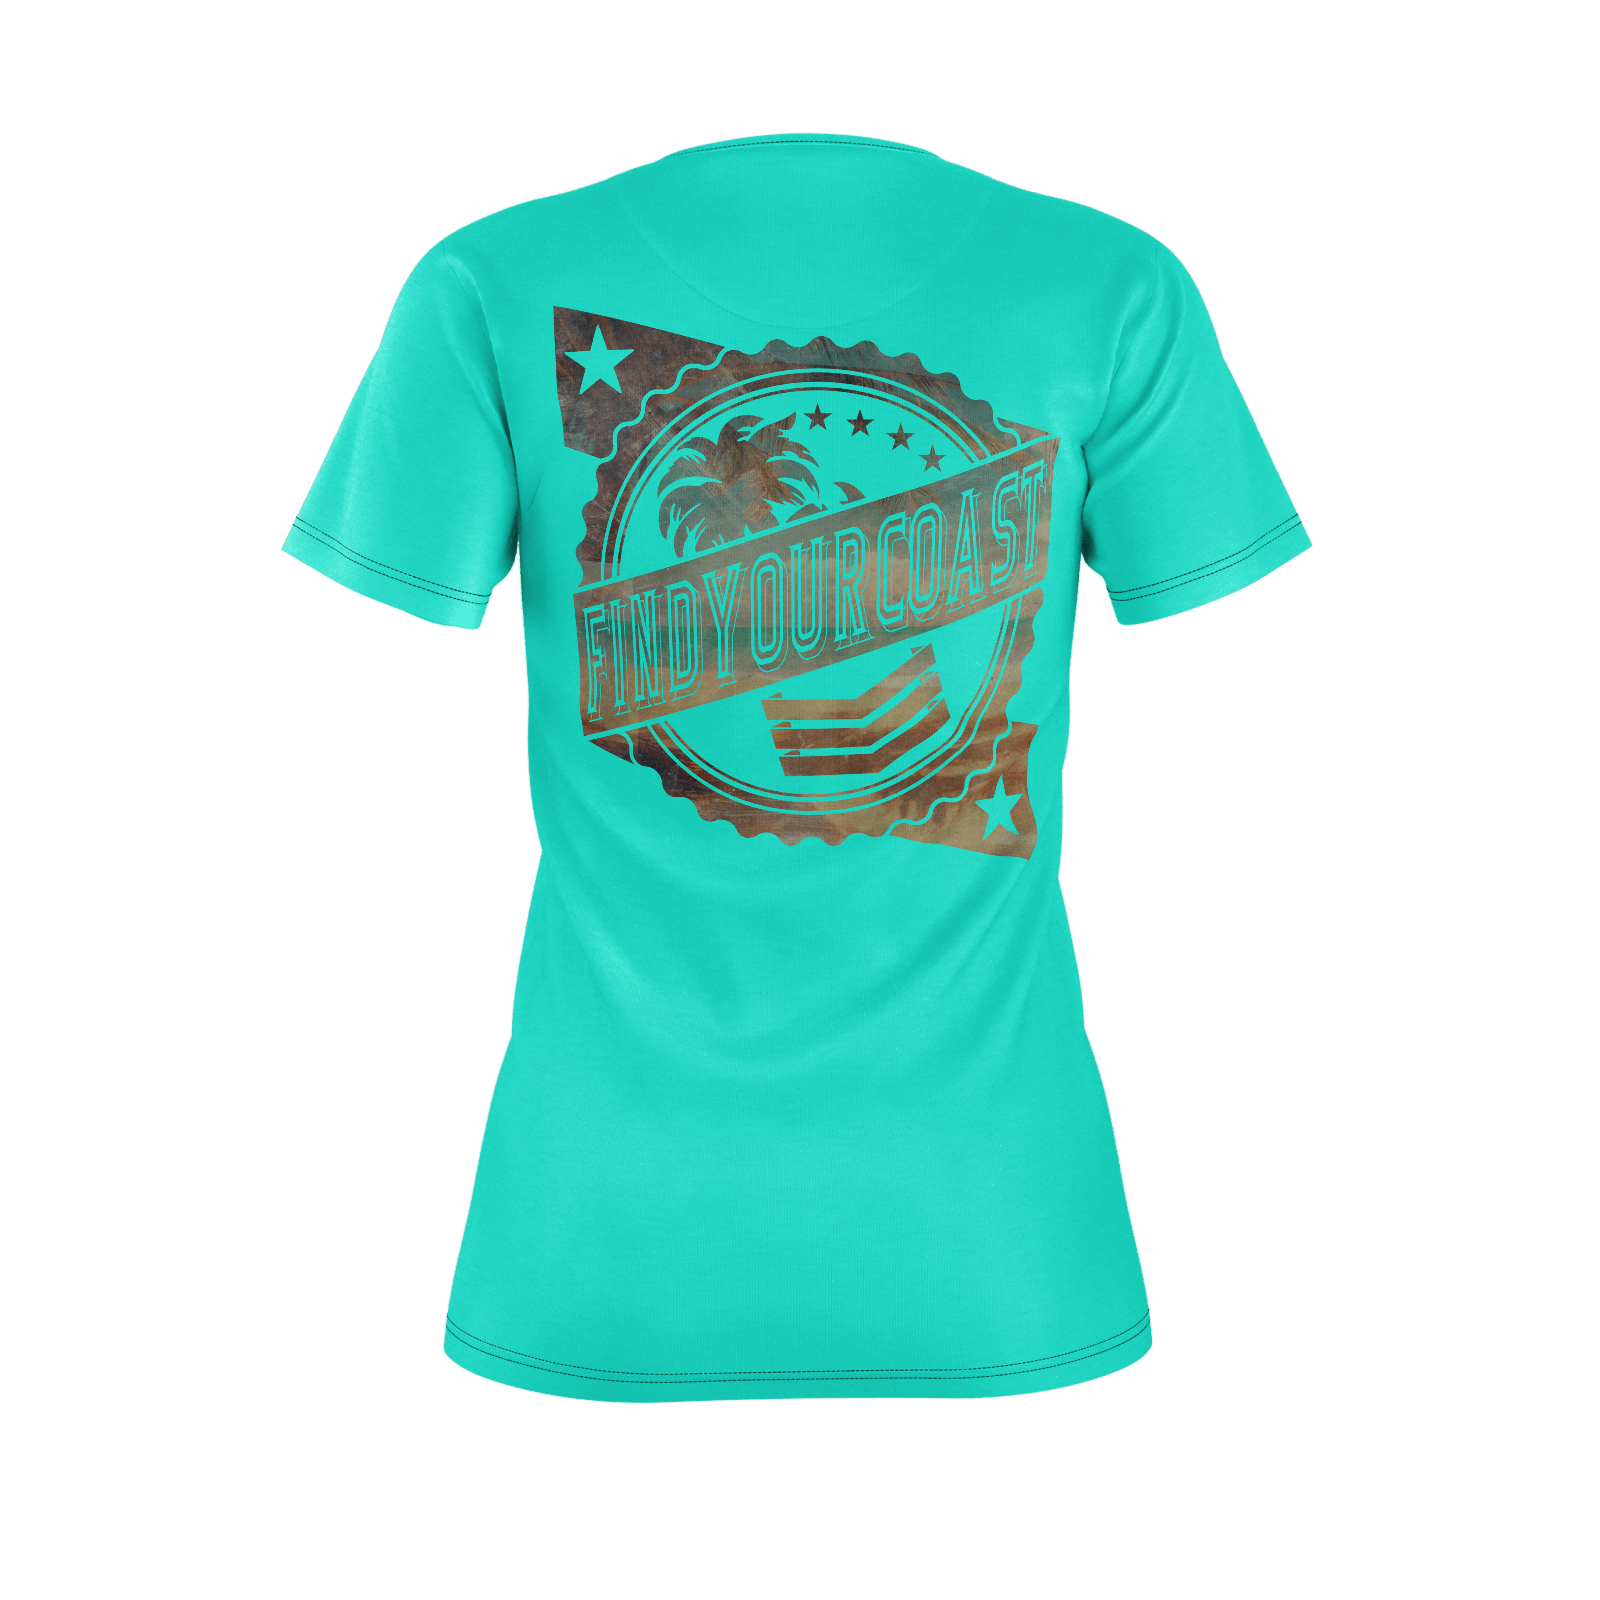 Women's Find Your Coast Sustainable Badge Teal Tee - Find Your Coast Supply Co.